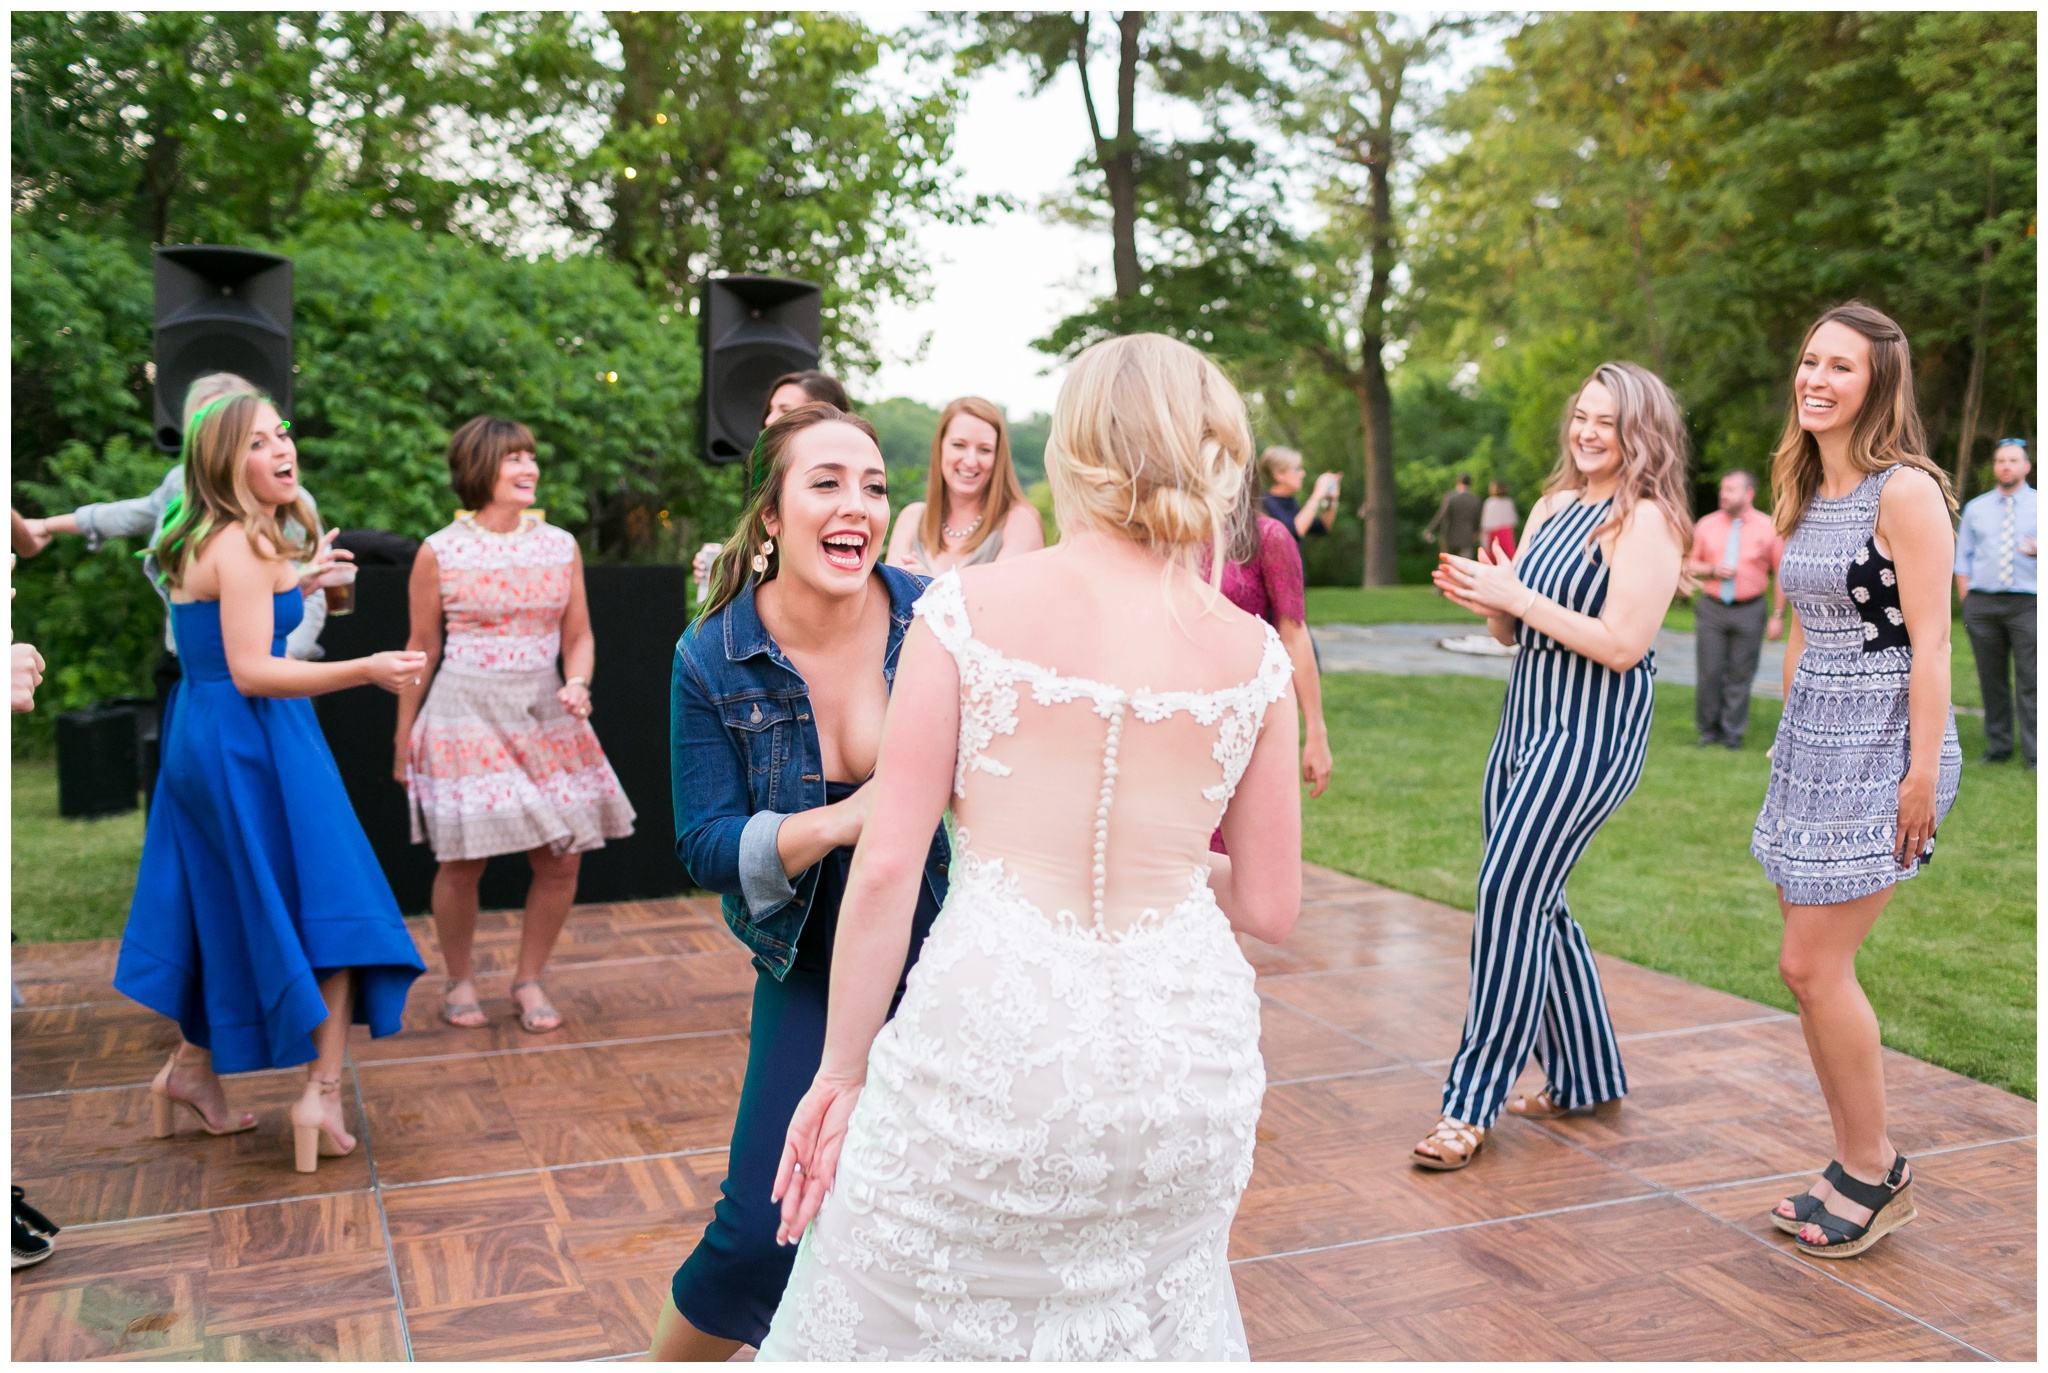 private_estate_wedding_stoughton_wisconsin_wedding_caynay_photo_3898.jpg